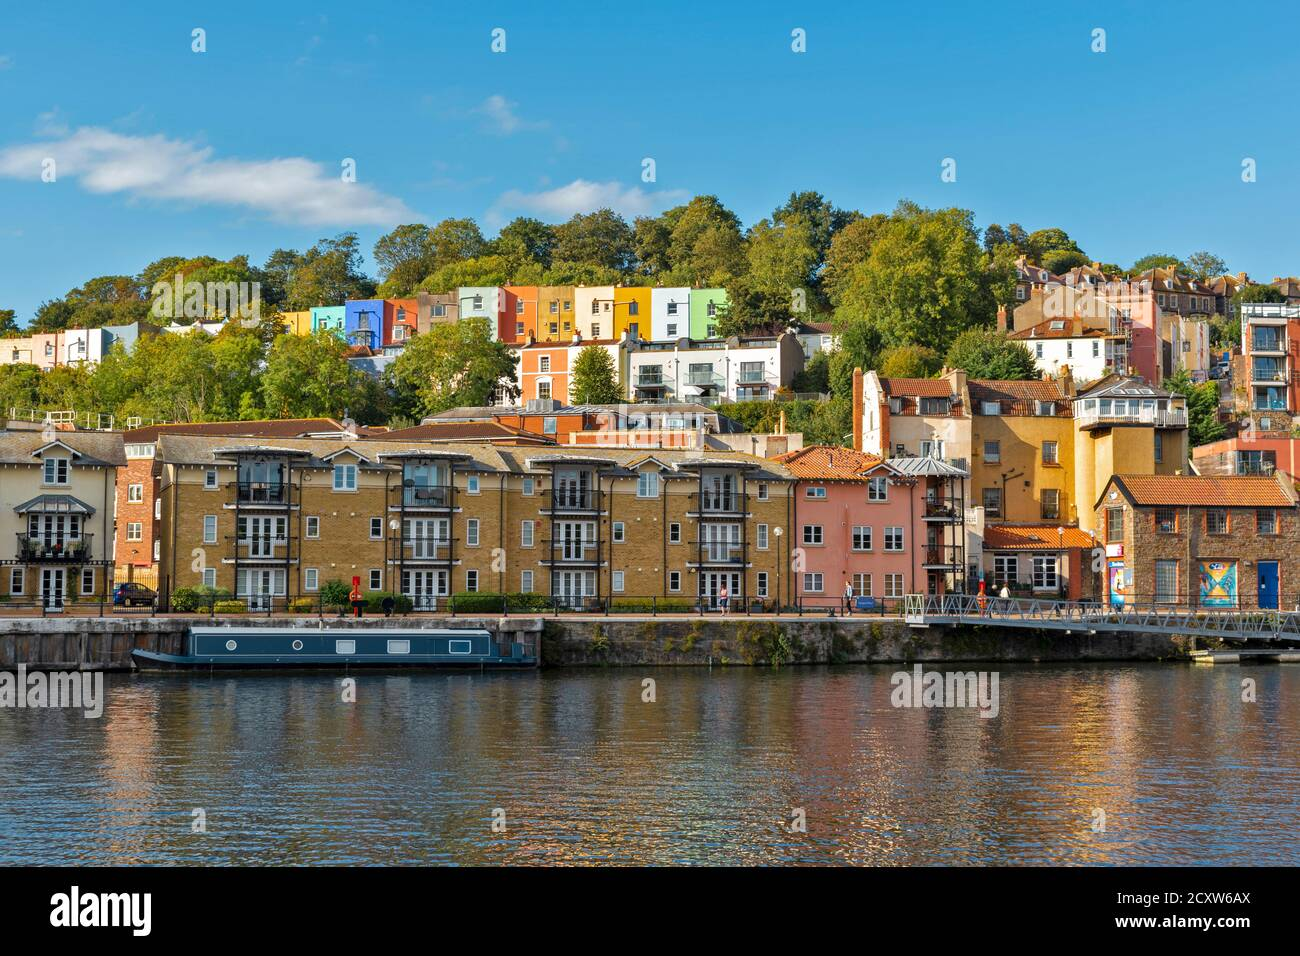 BRISTOL CITY ENGLAND HOTWELLS DOCKS THE COLOURED HOUSES OF CLIFTON WOOD AND AMBRA VALE AND WATERSIDE HOUSES OF ROWNHAM MEAD POOLES WHARF AREA Stock Photo